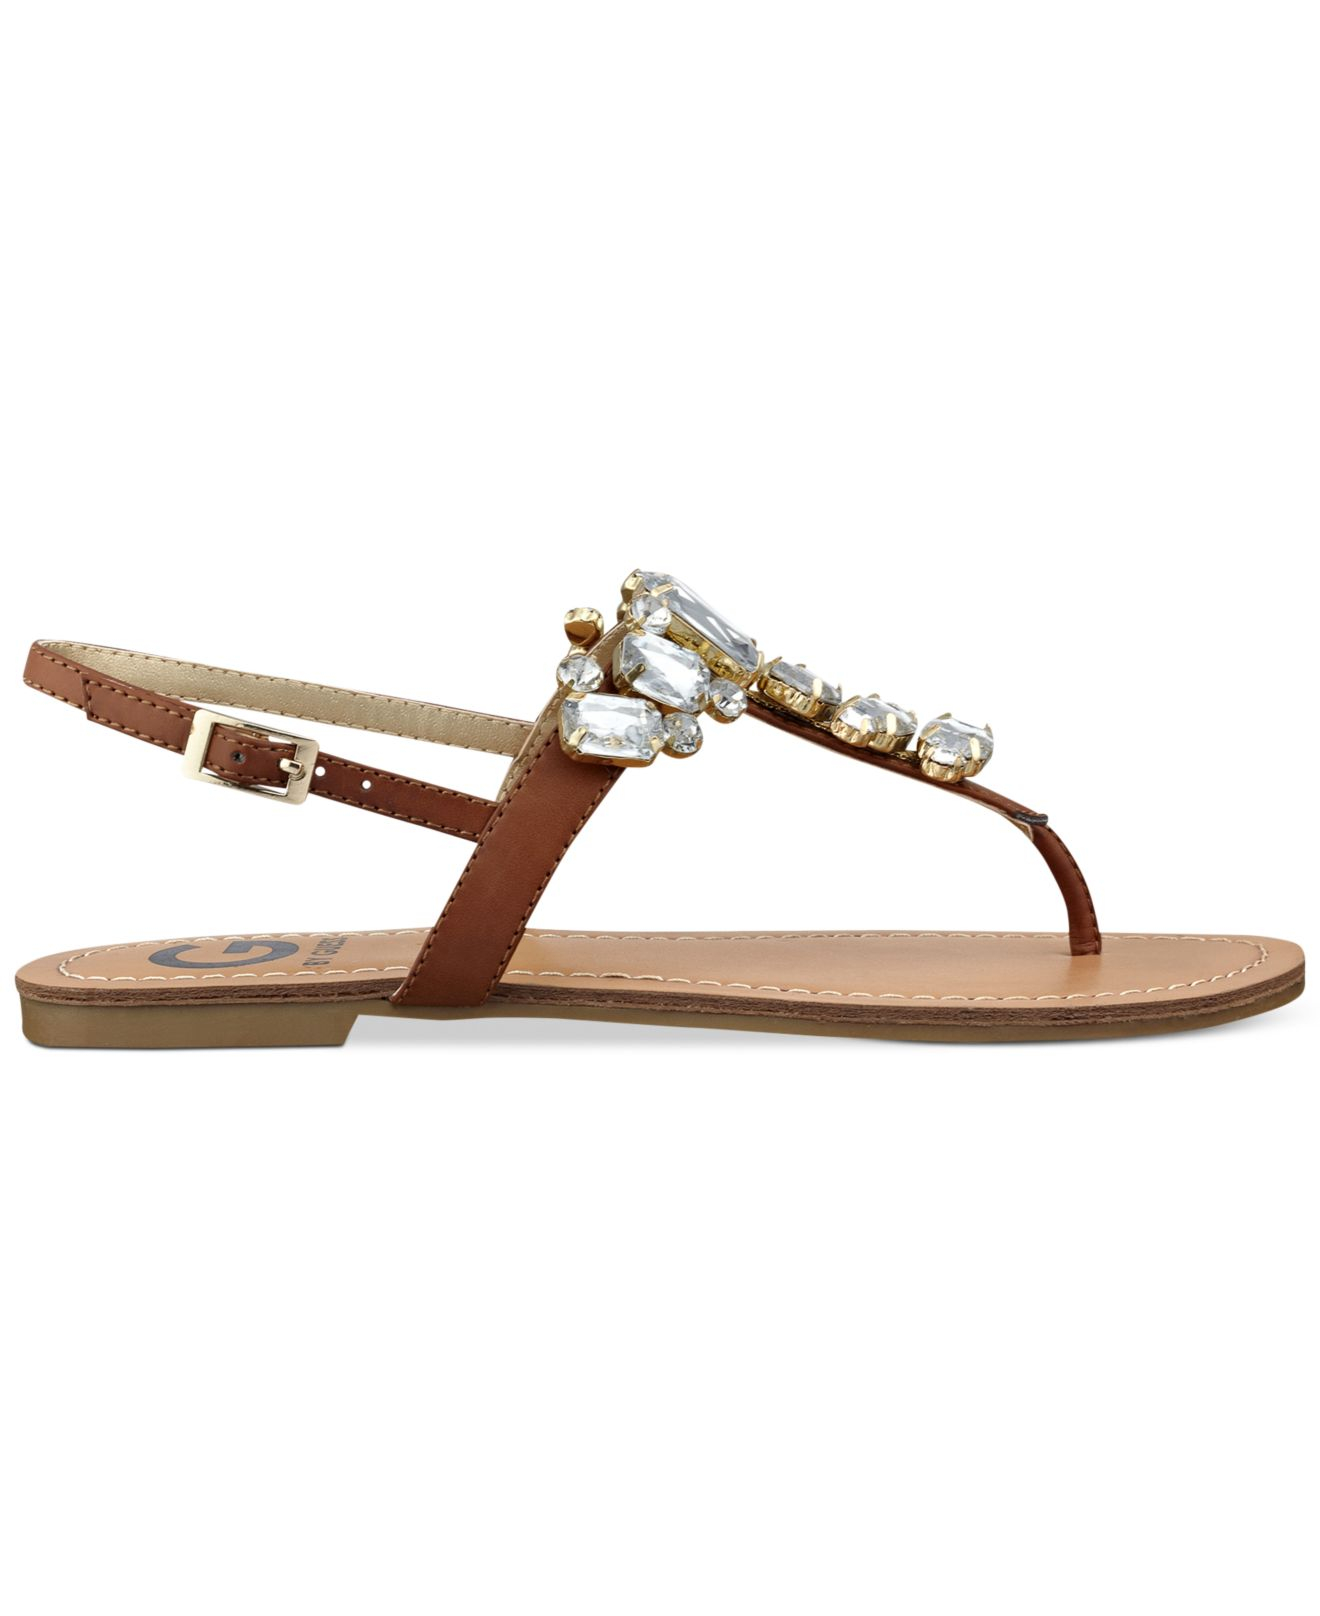 9a2edd71dc8c8 Lyst - G by Guess Women S Kyli T-Strap Flat Thong Sandals in Brown